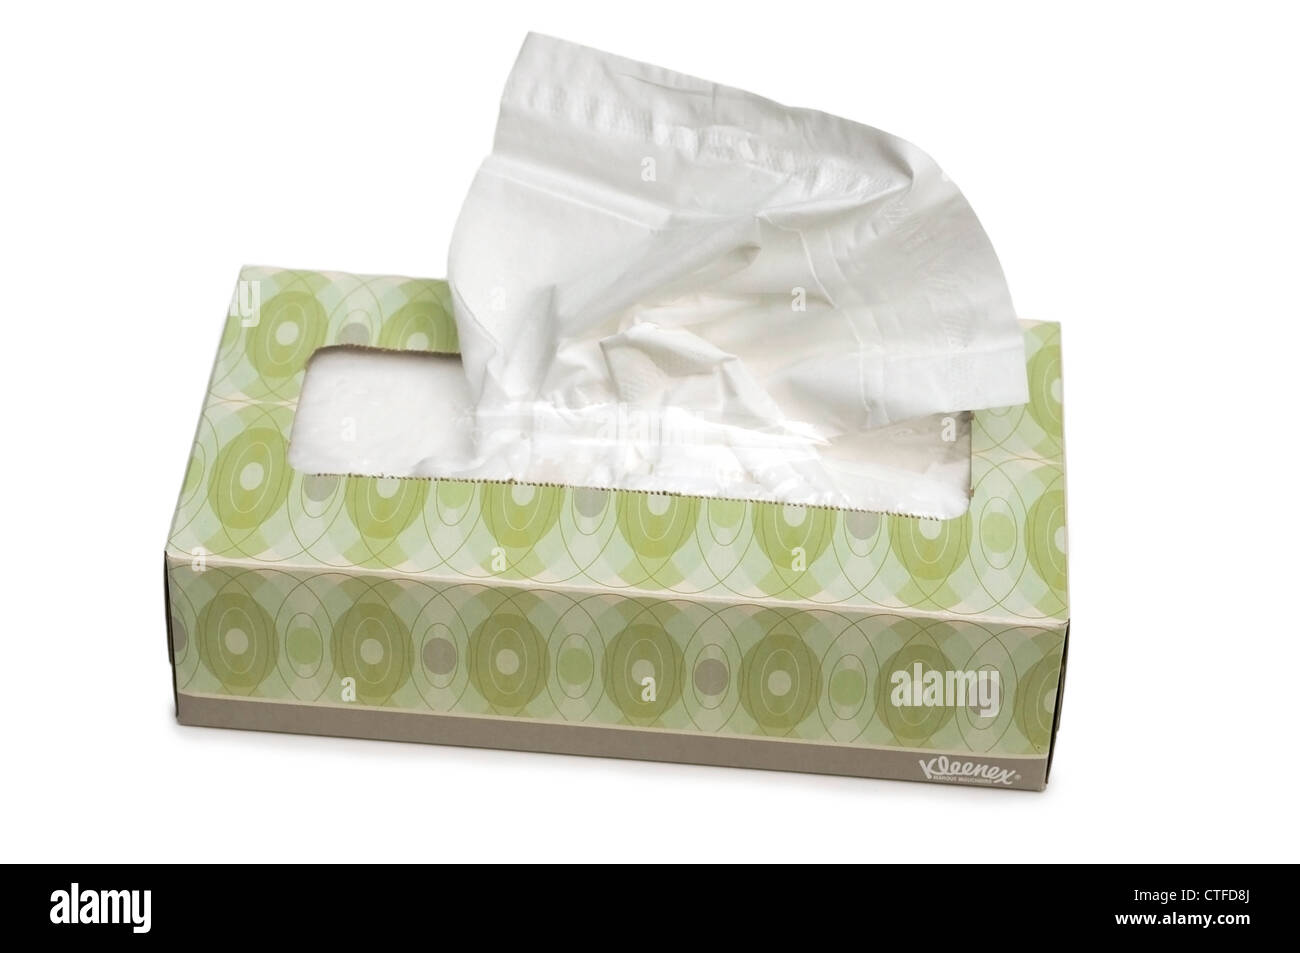 Box of Tissues - Stock Image